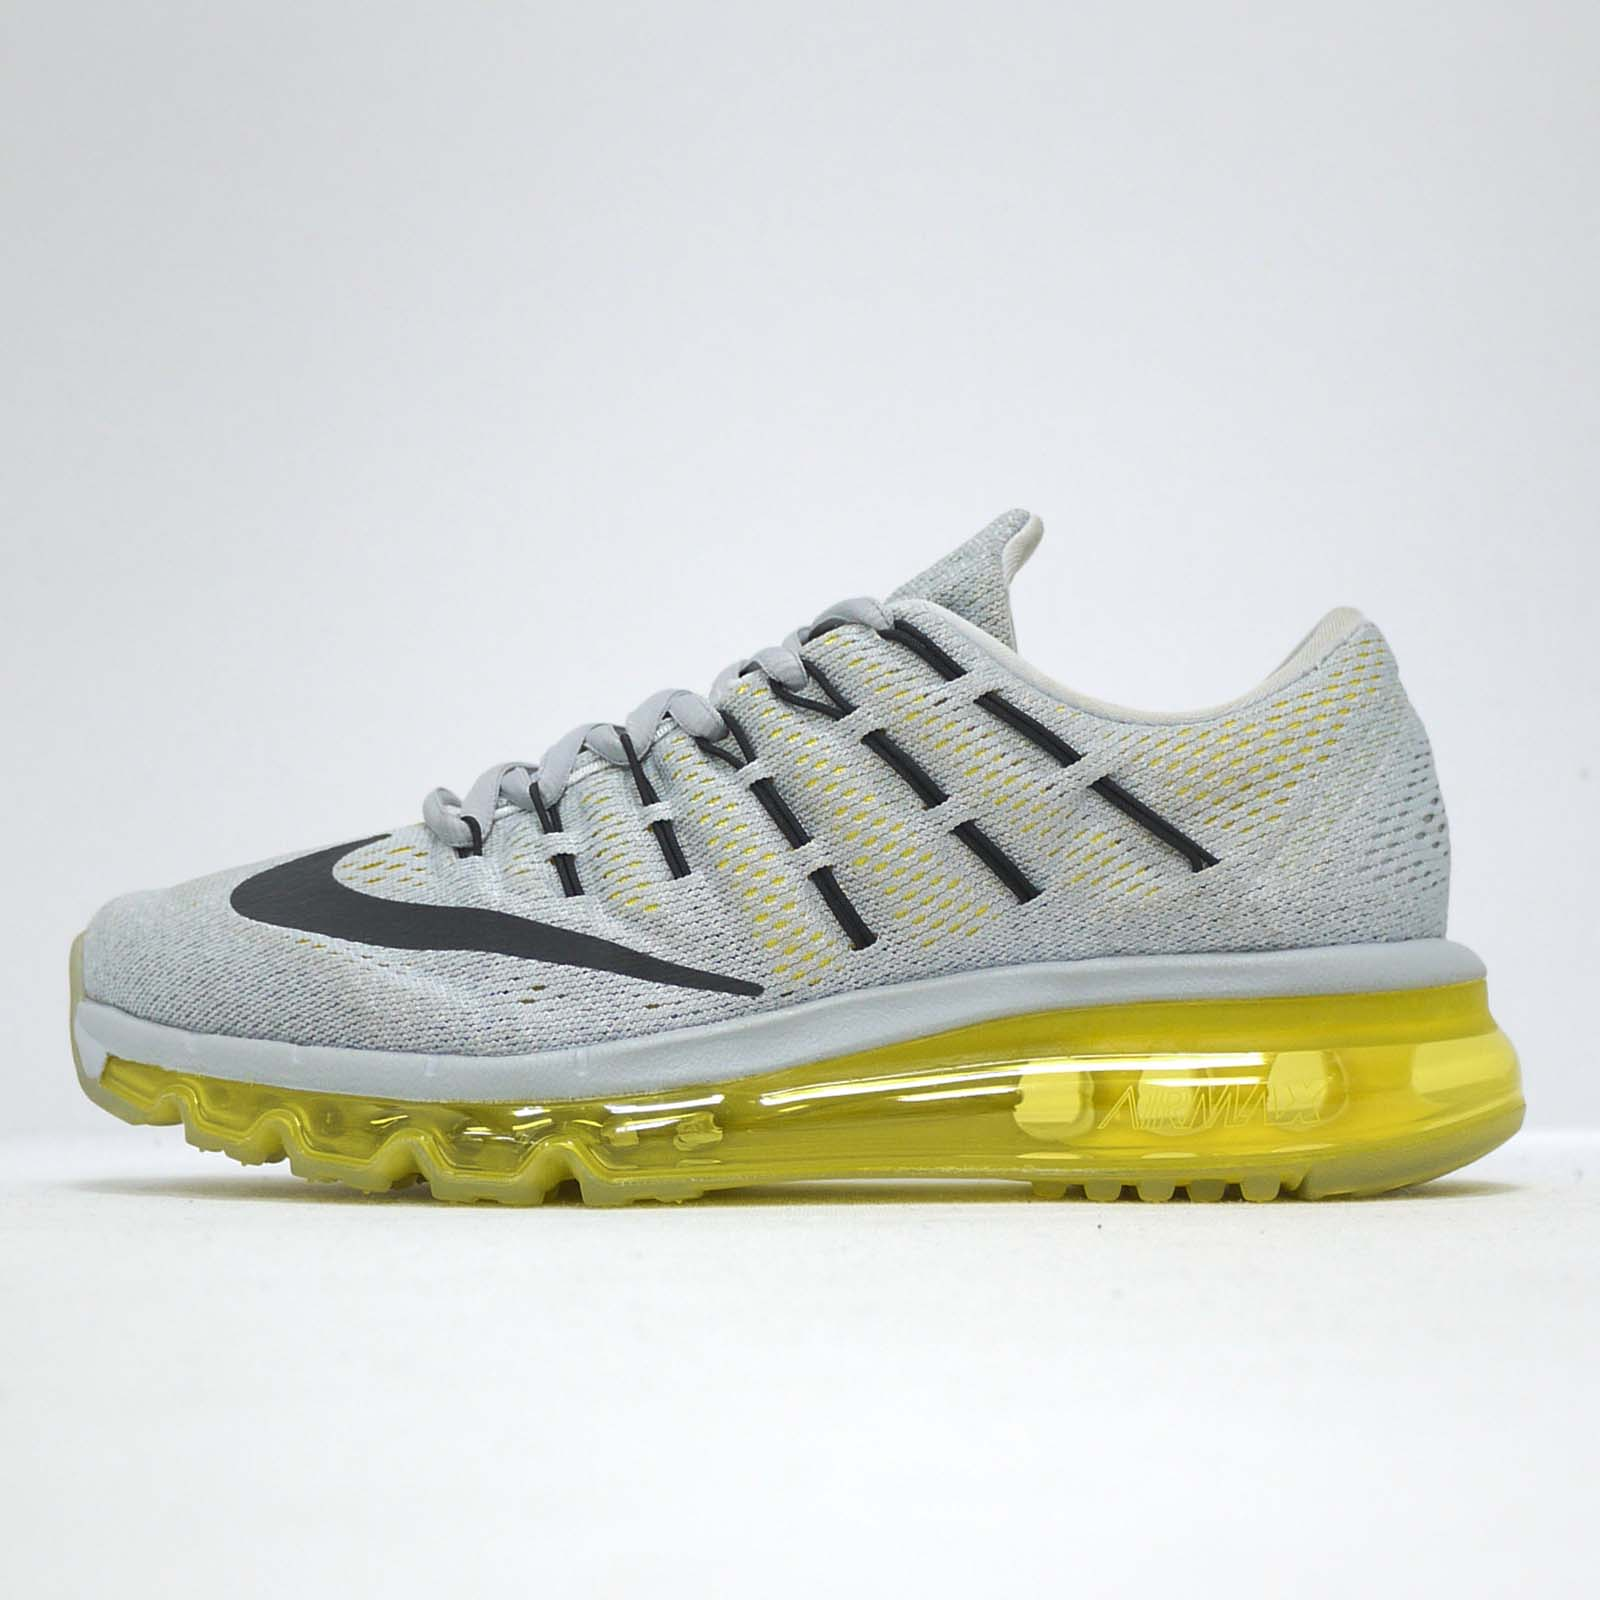 save off 0a3ab e0f50 Nike Wmns Air Max 2016 Left Foot With Discoloration Women Shoes 806772-007